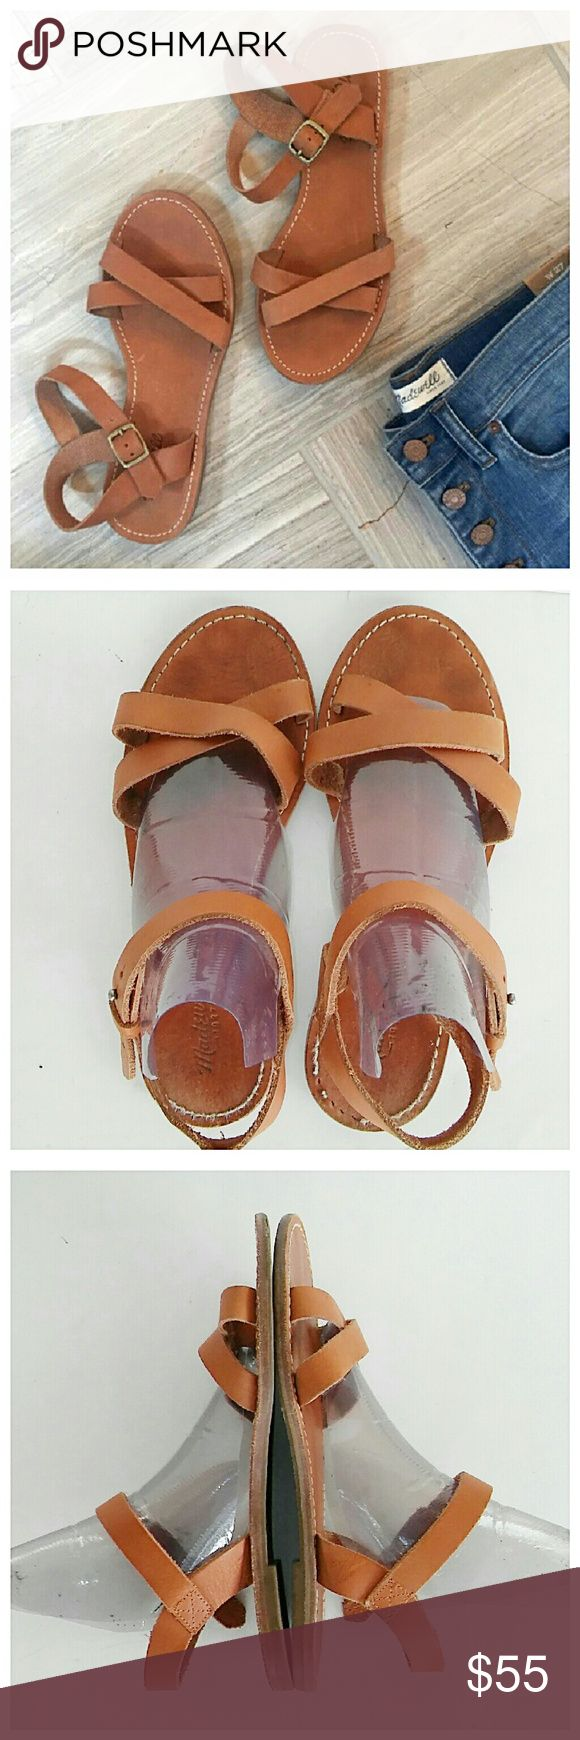 Madewell Sightseer Criss Cross Sandals Perfect neutral sandal that will go with everything. The thread has worn some on the rear footbed (see pic 4) but they're still in good shape overall. Covershot is for reference only.  Reasonable offers accepted  Madewell Shoes Sandals